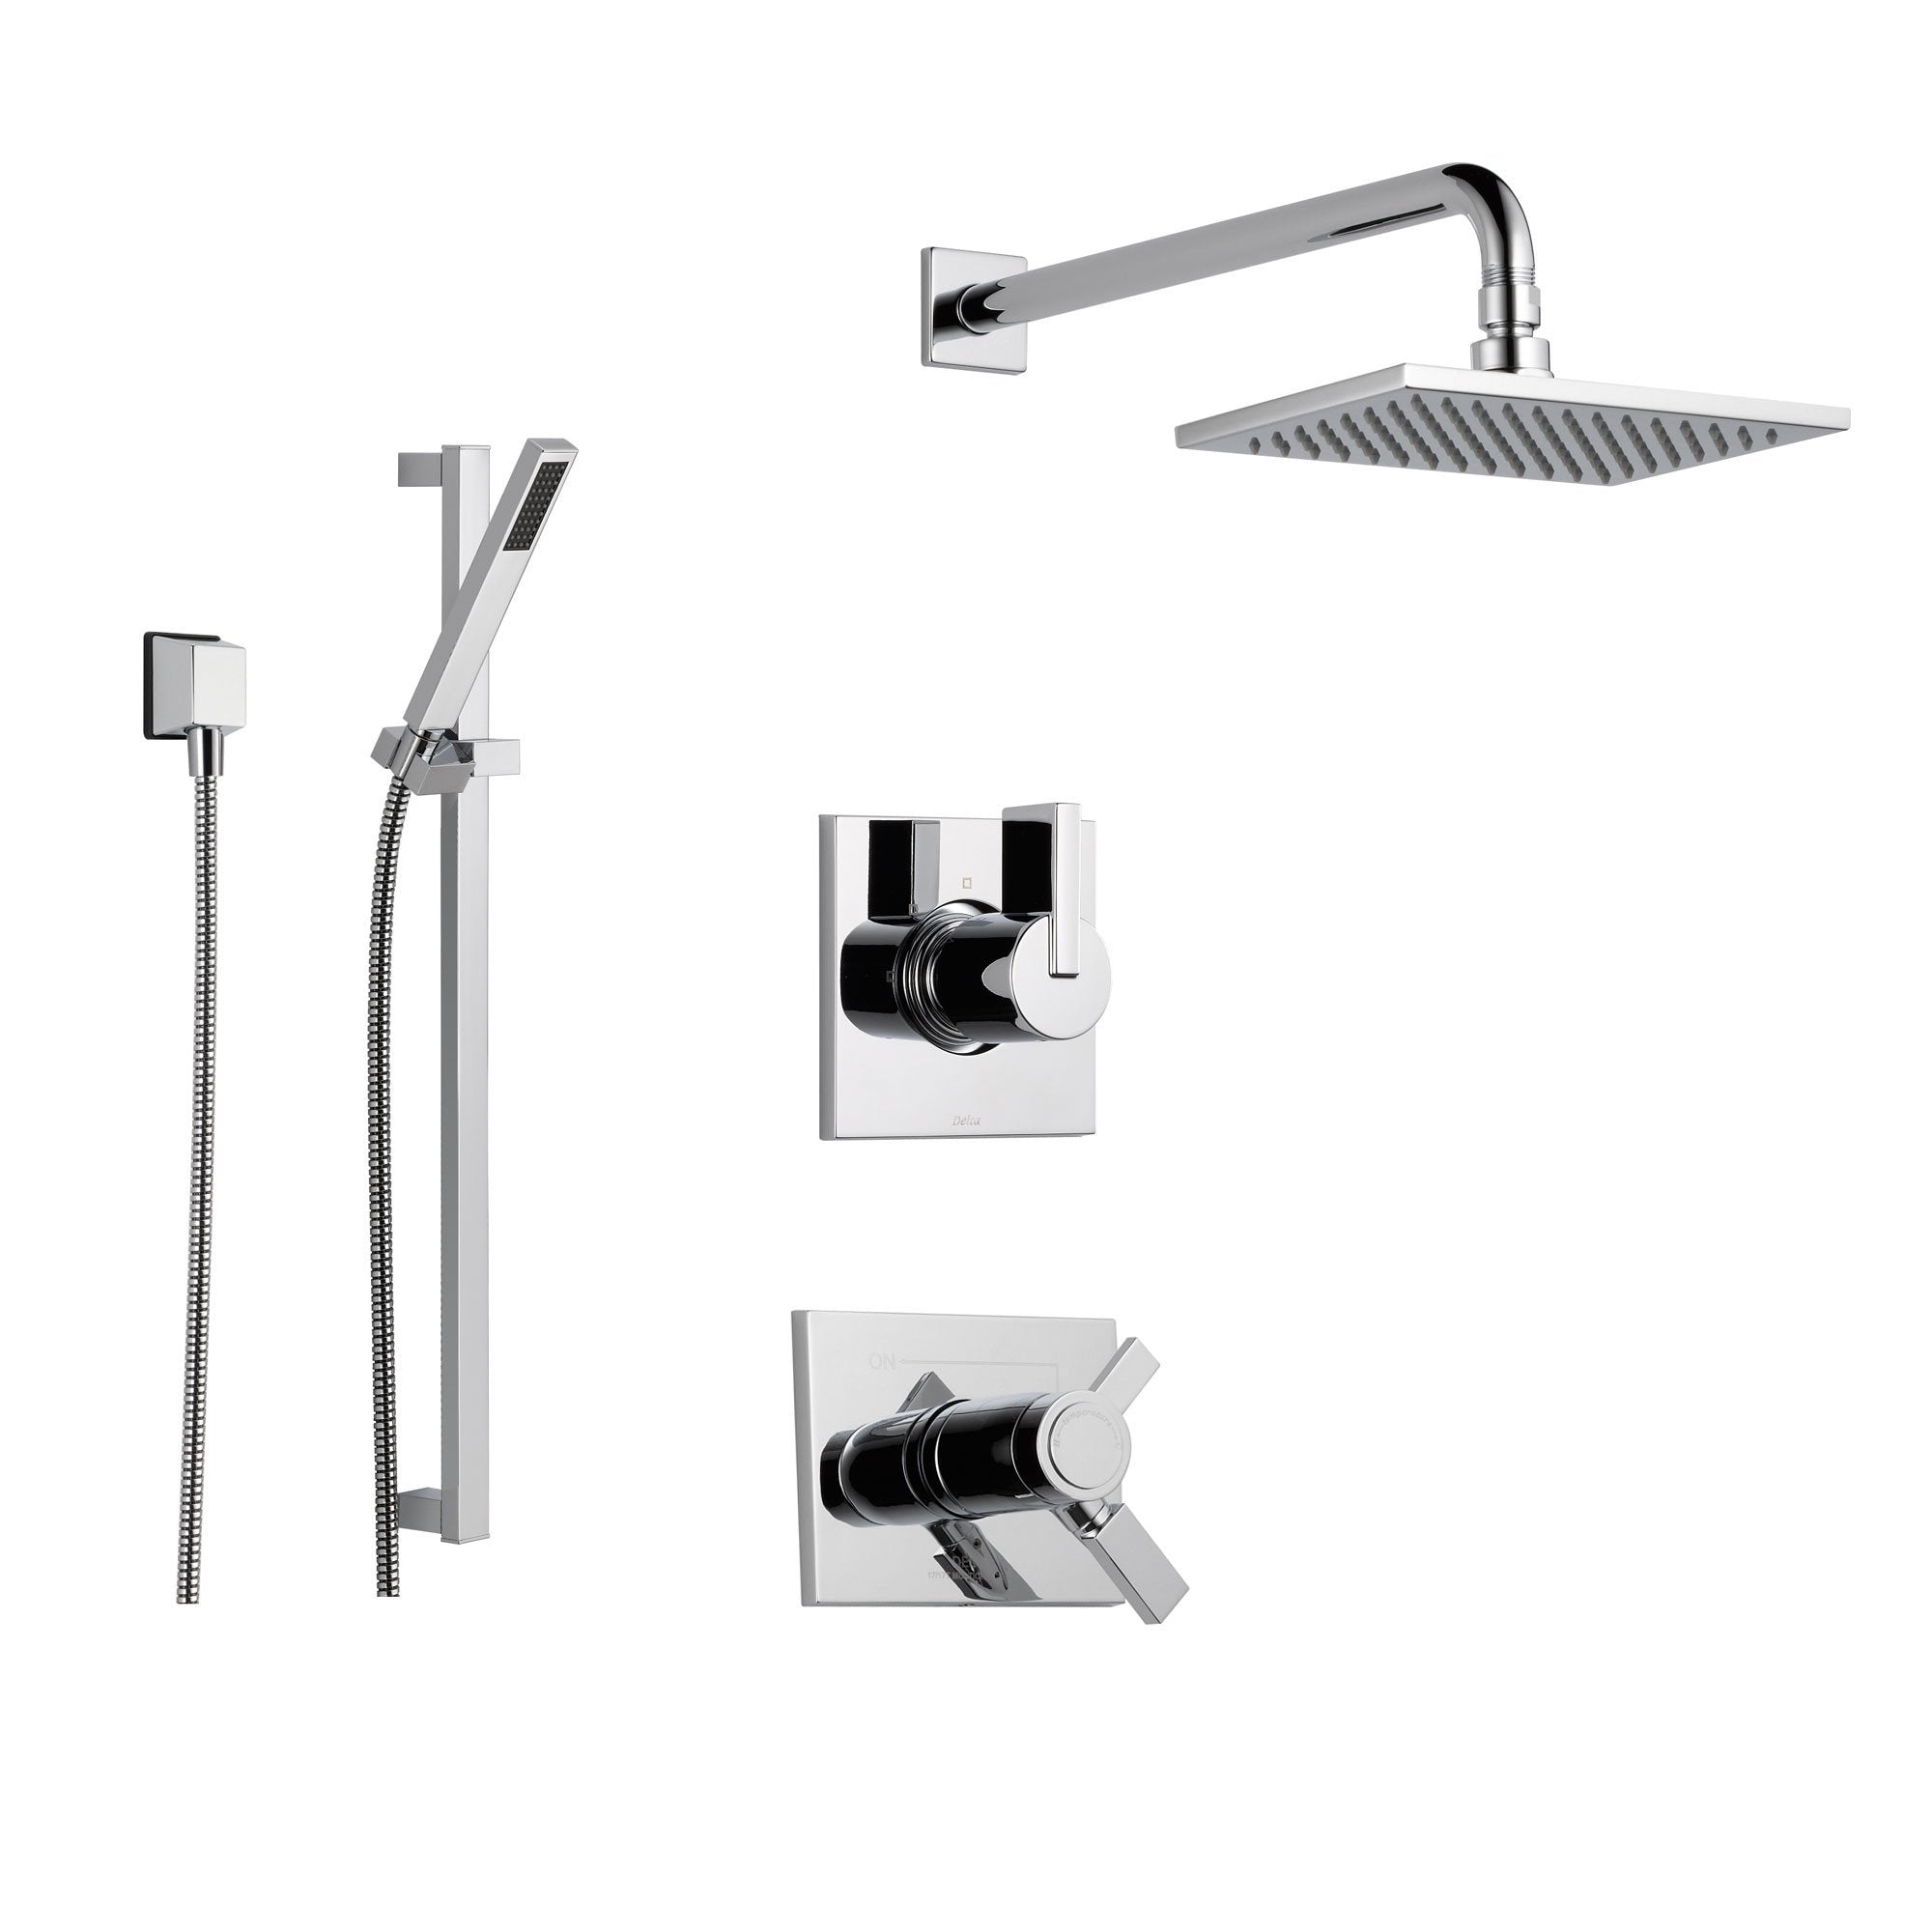 Delta Rain Shower Head With Handheld.Delta Vero Chrome Shower System With Thermostatic Shower Handle 3 Setting Diverter Large Square Rain Showerhead And Handheld Shower Ss17t5384